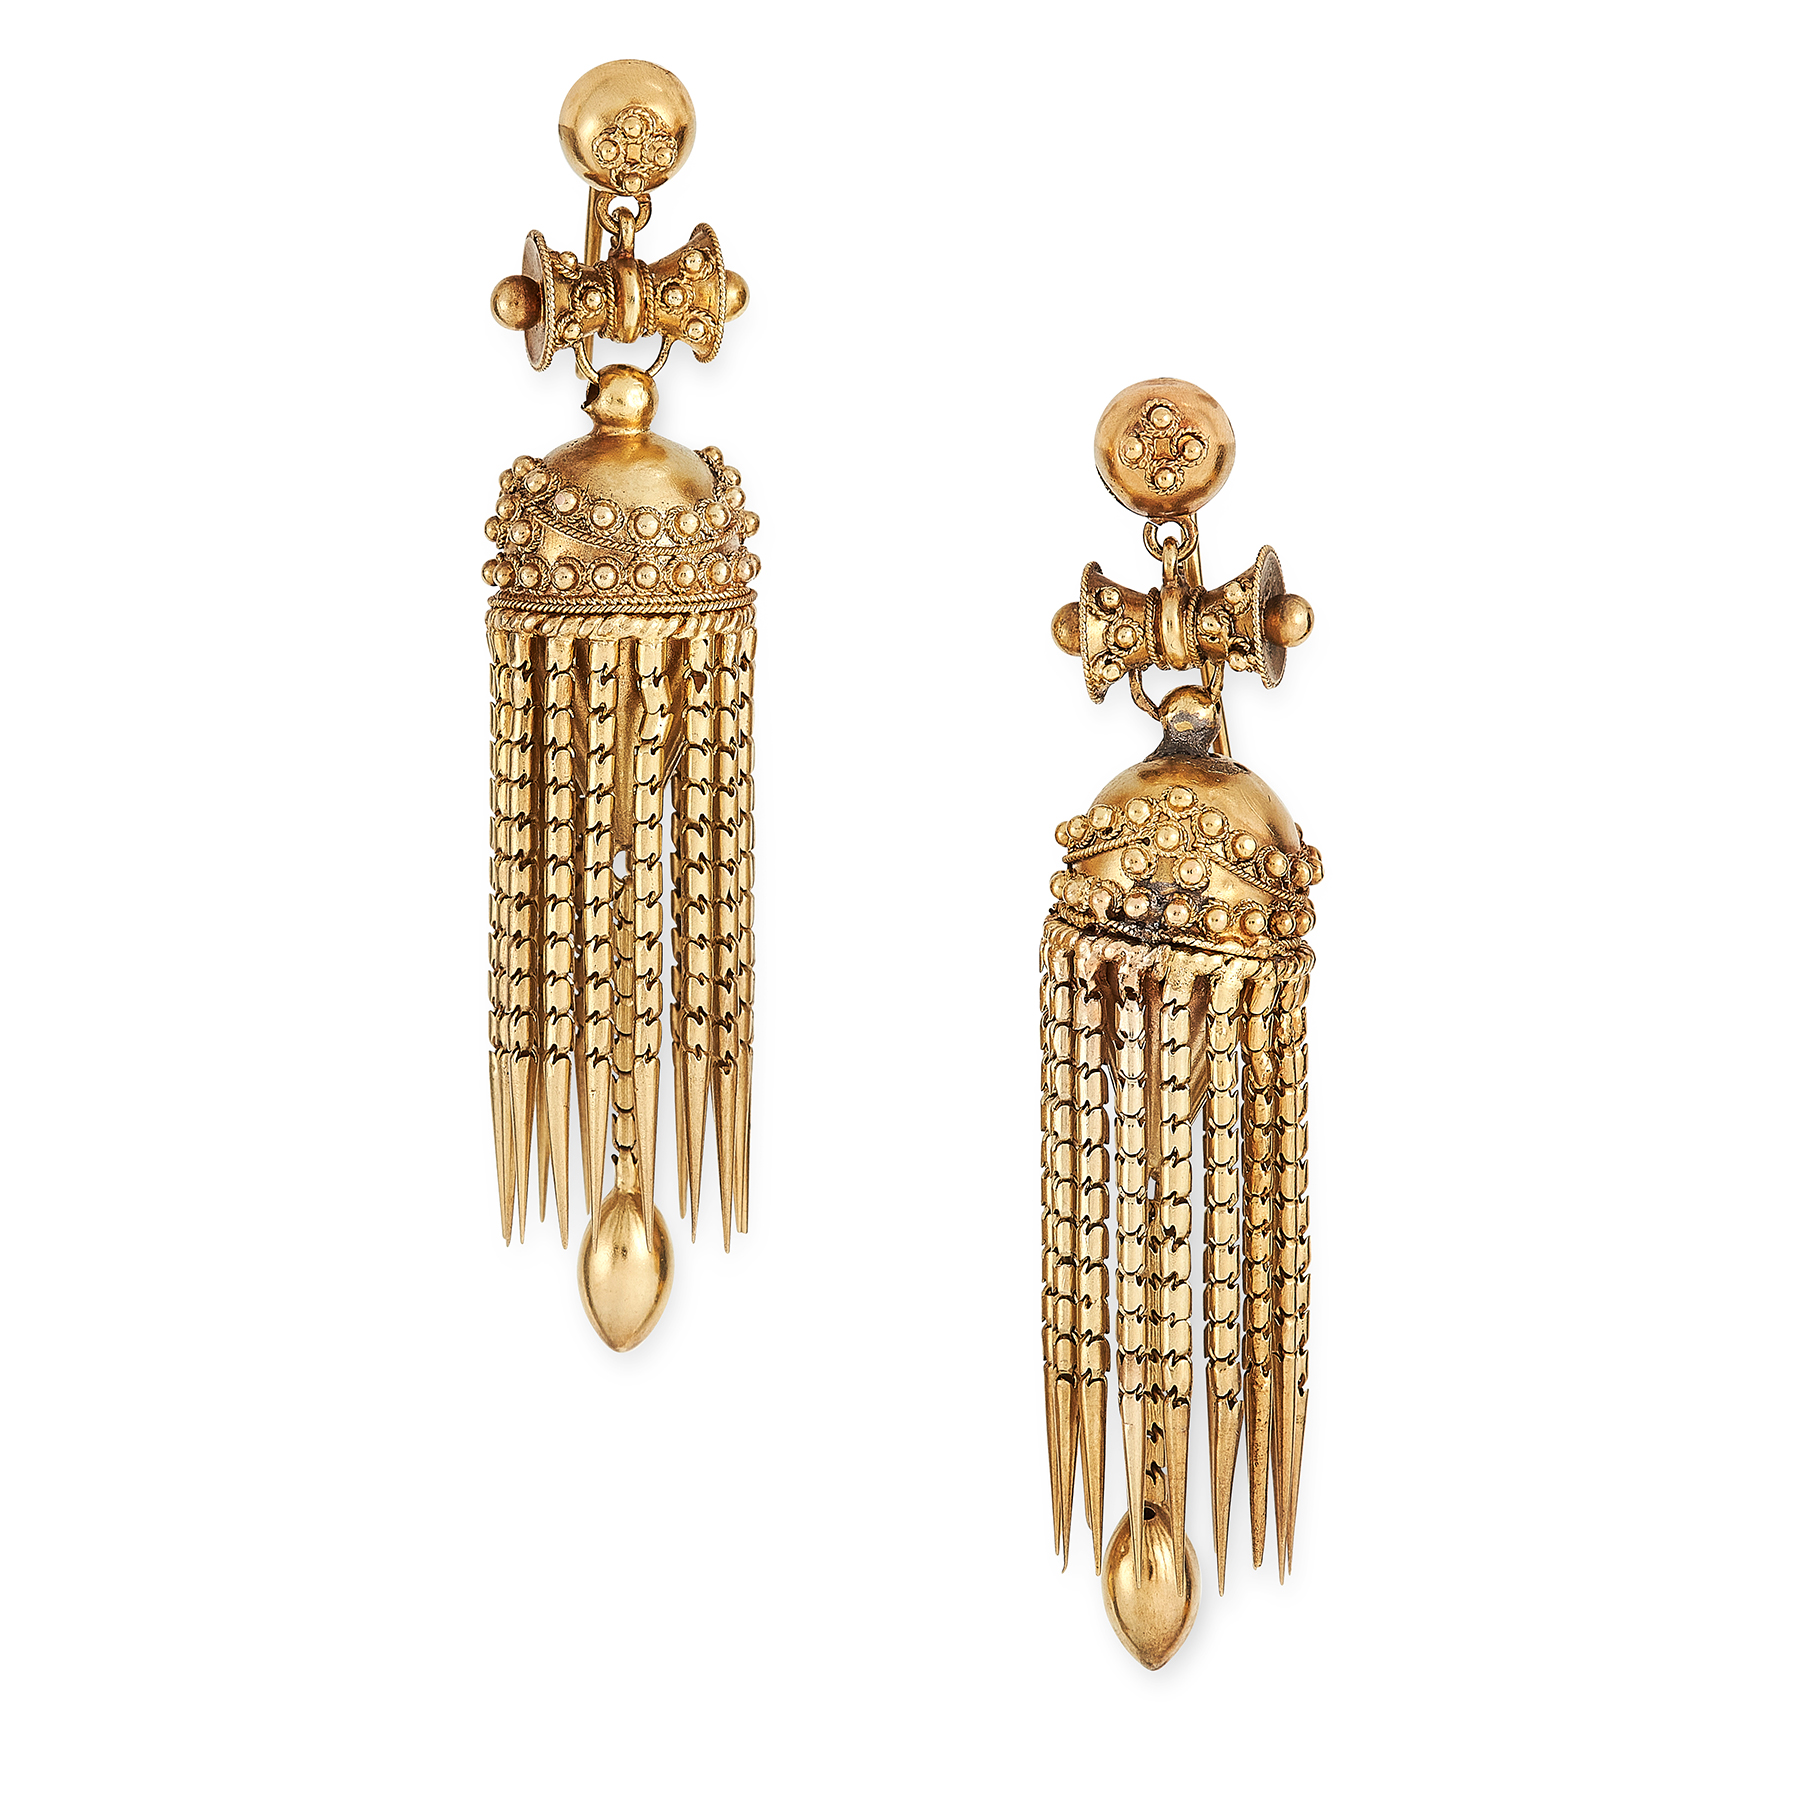 A PAIR OF ANTIQUE GOLD TASSEL EARRINGS, 19TH CENTURY in high carat yellow gold, in the Etruscan